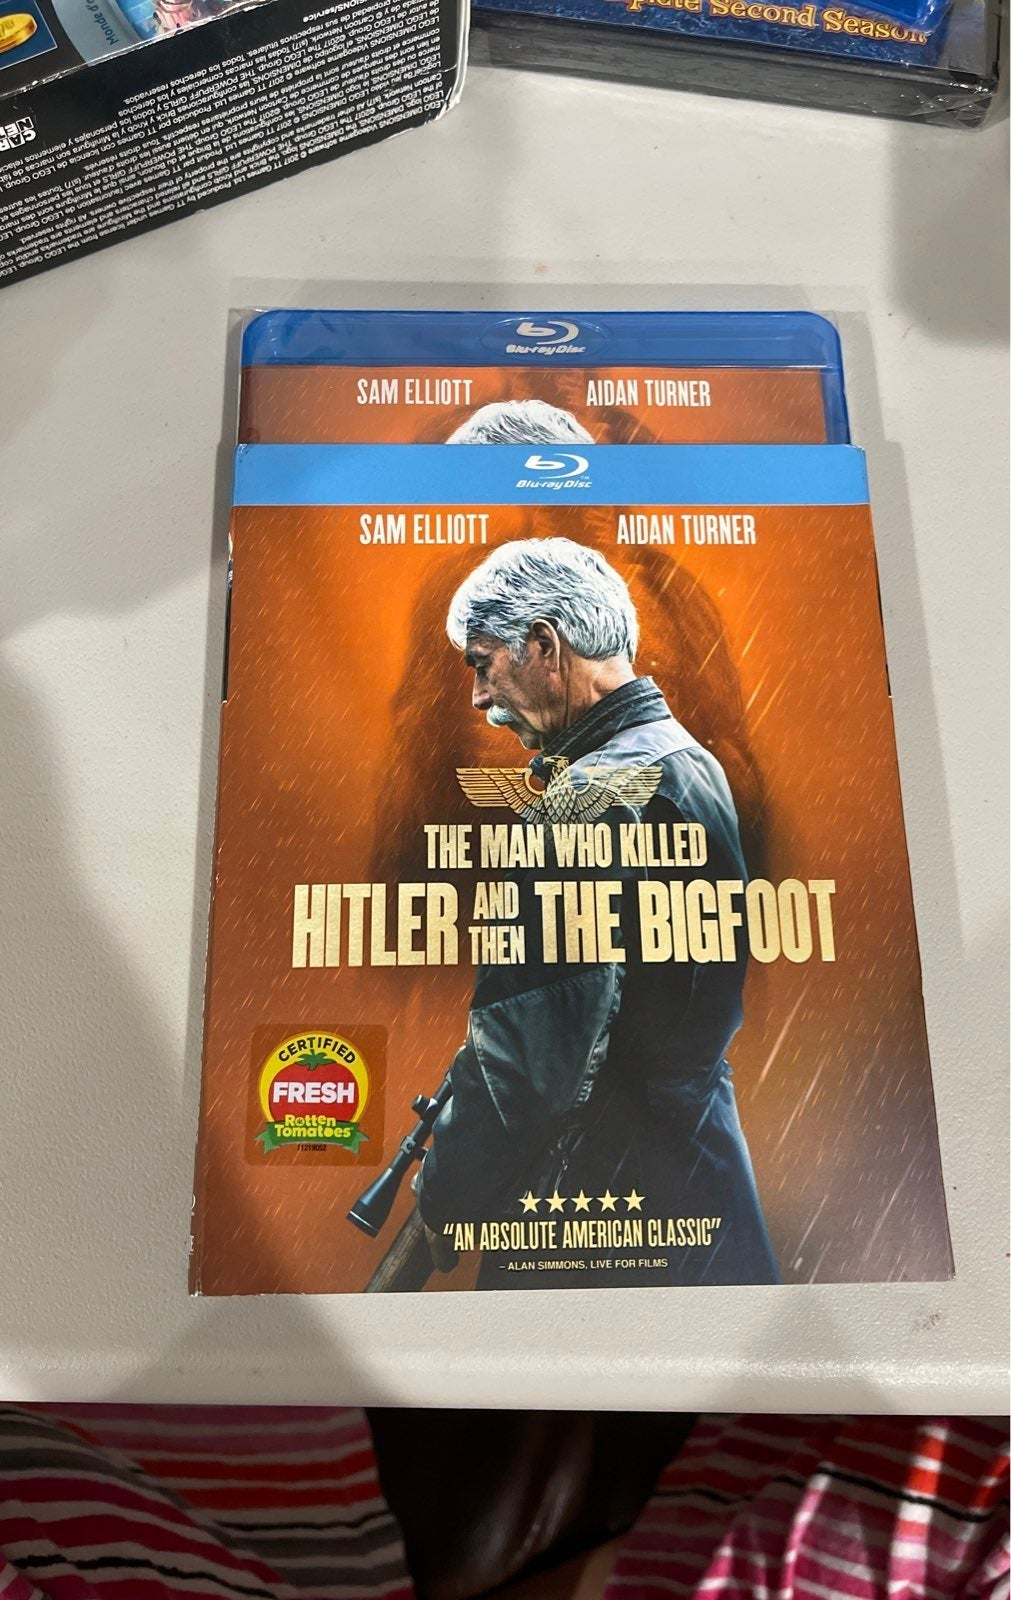 The Man who killed Hitler and then Big F